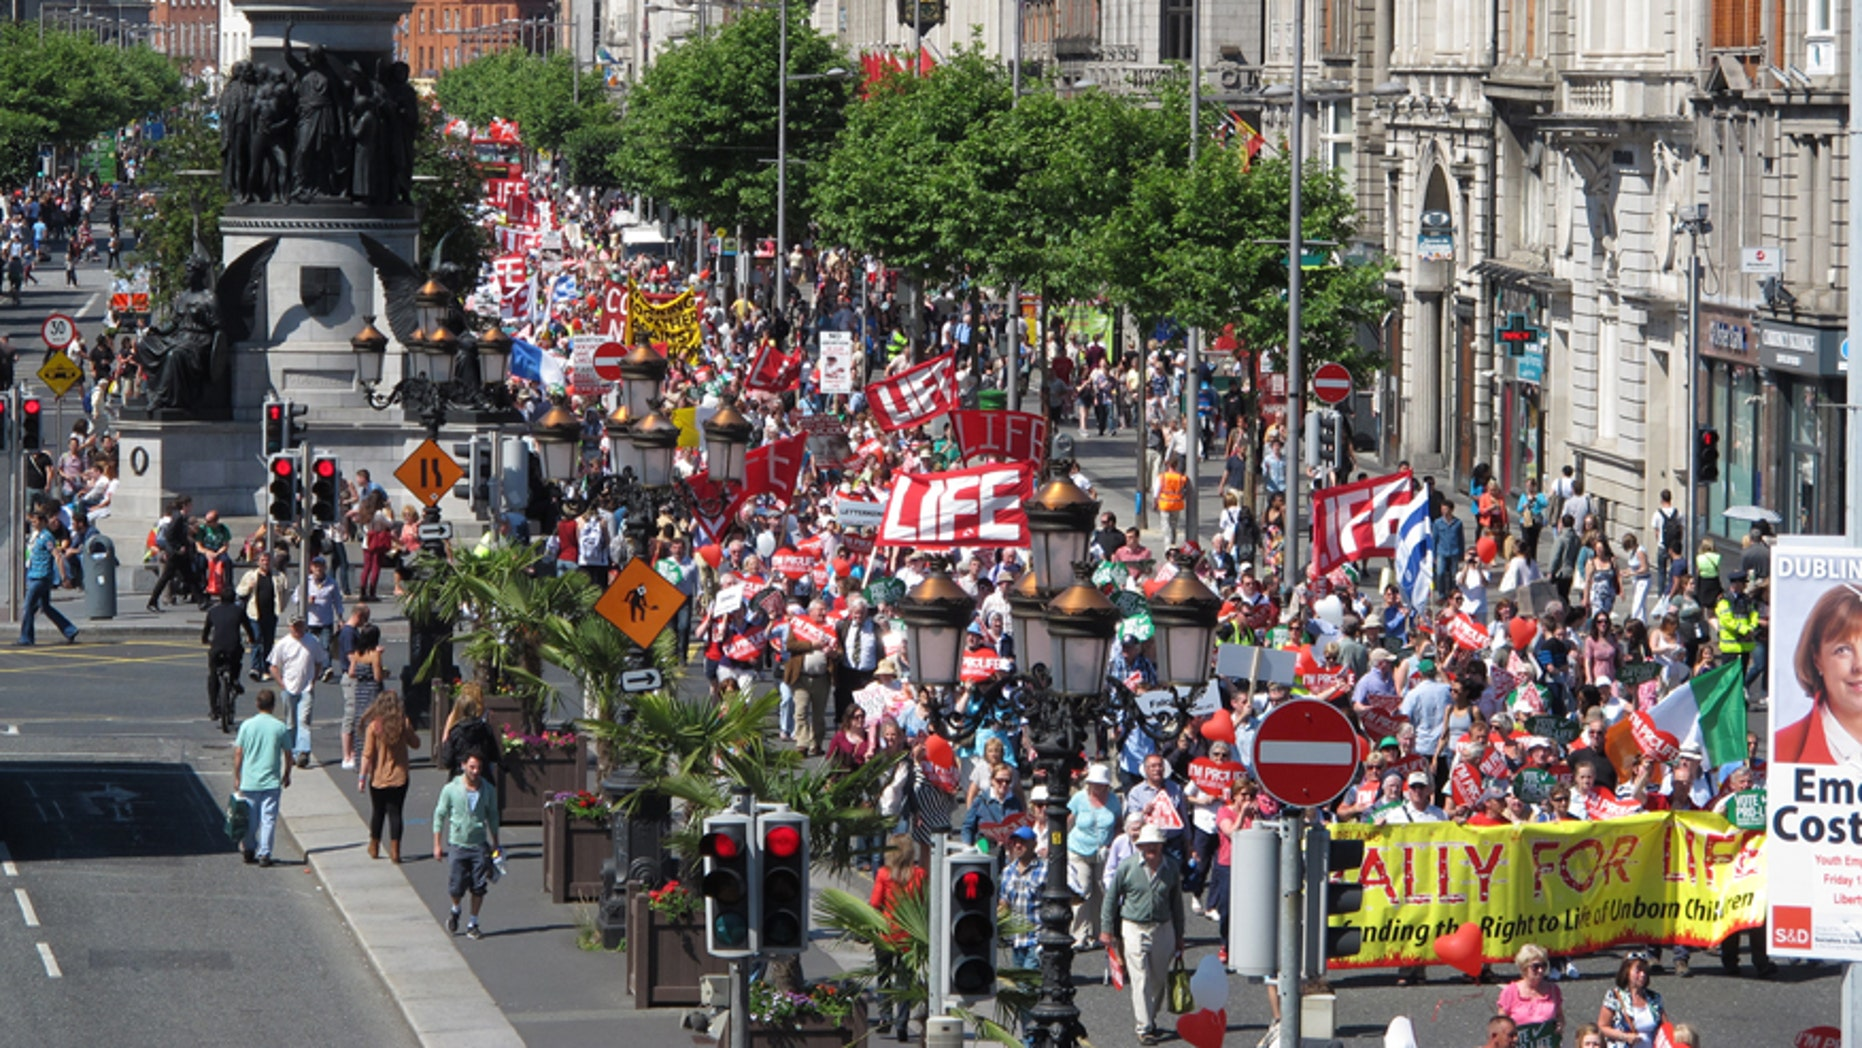 A July 6, 2013 file photo showing thousands of anti-abortion protesters filling Dublin's major thoroughfare, as they march against Ireland's abortion bill. United Nations human rights experts said Thursday June 9, 2016 that Ireland's abortion ban subjects women to discriminatory, cruel and degrading treatment and should be ended for cases involving fatal fetal abnormalities.